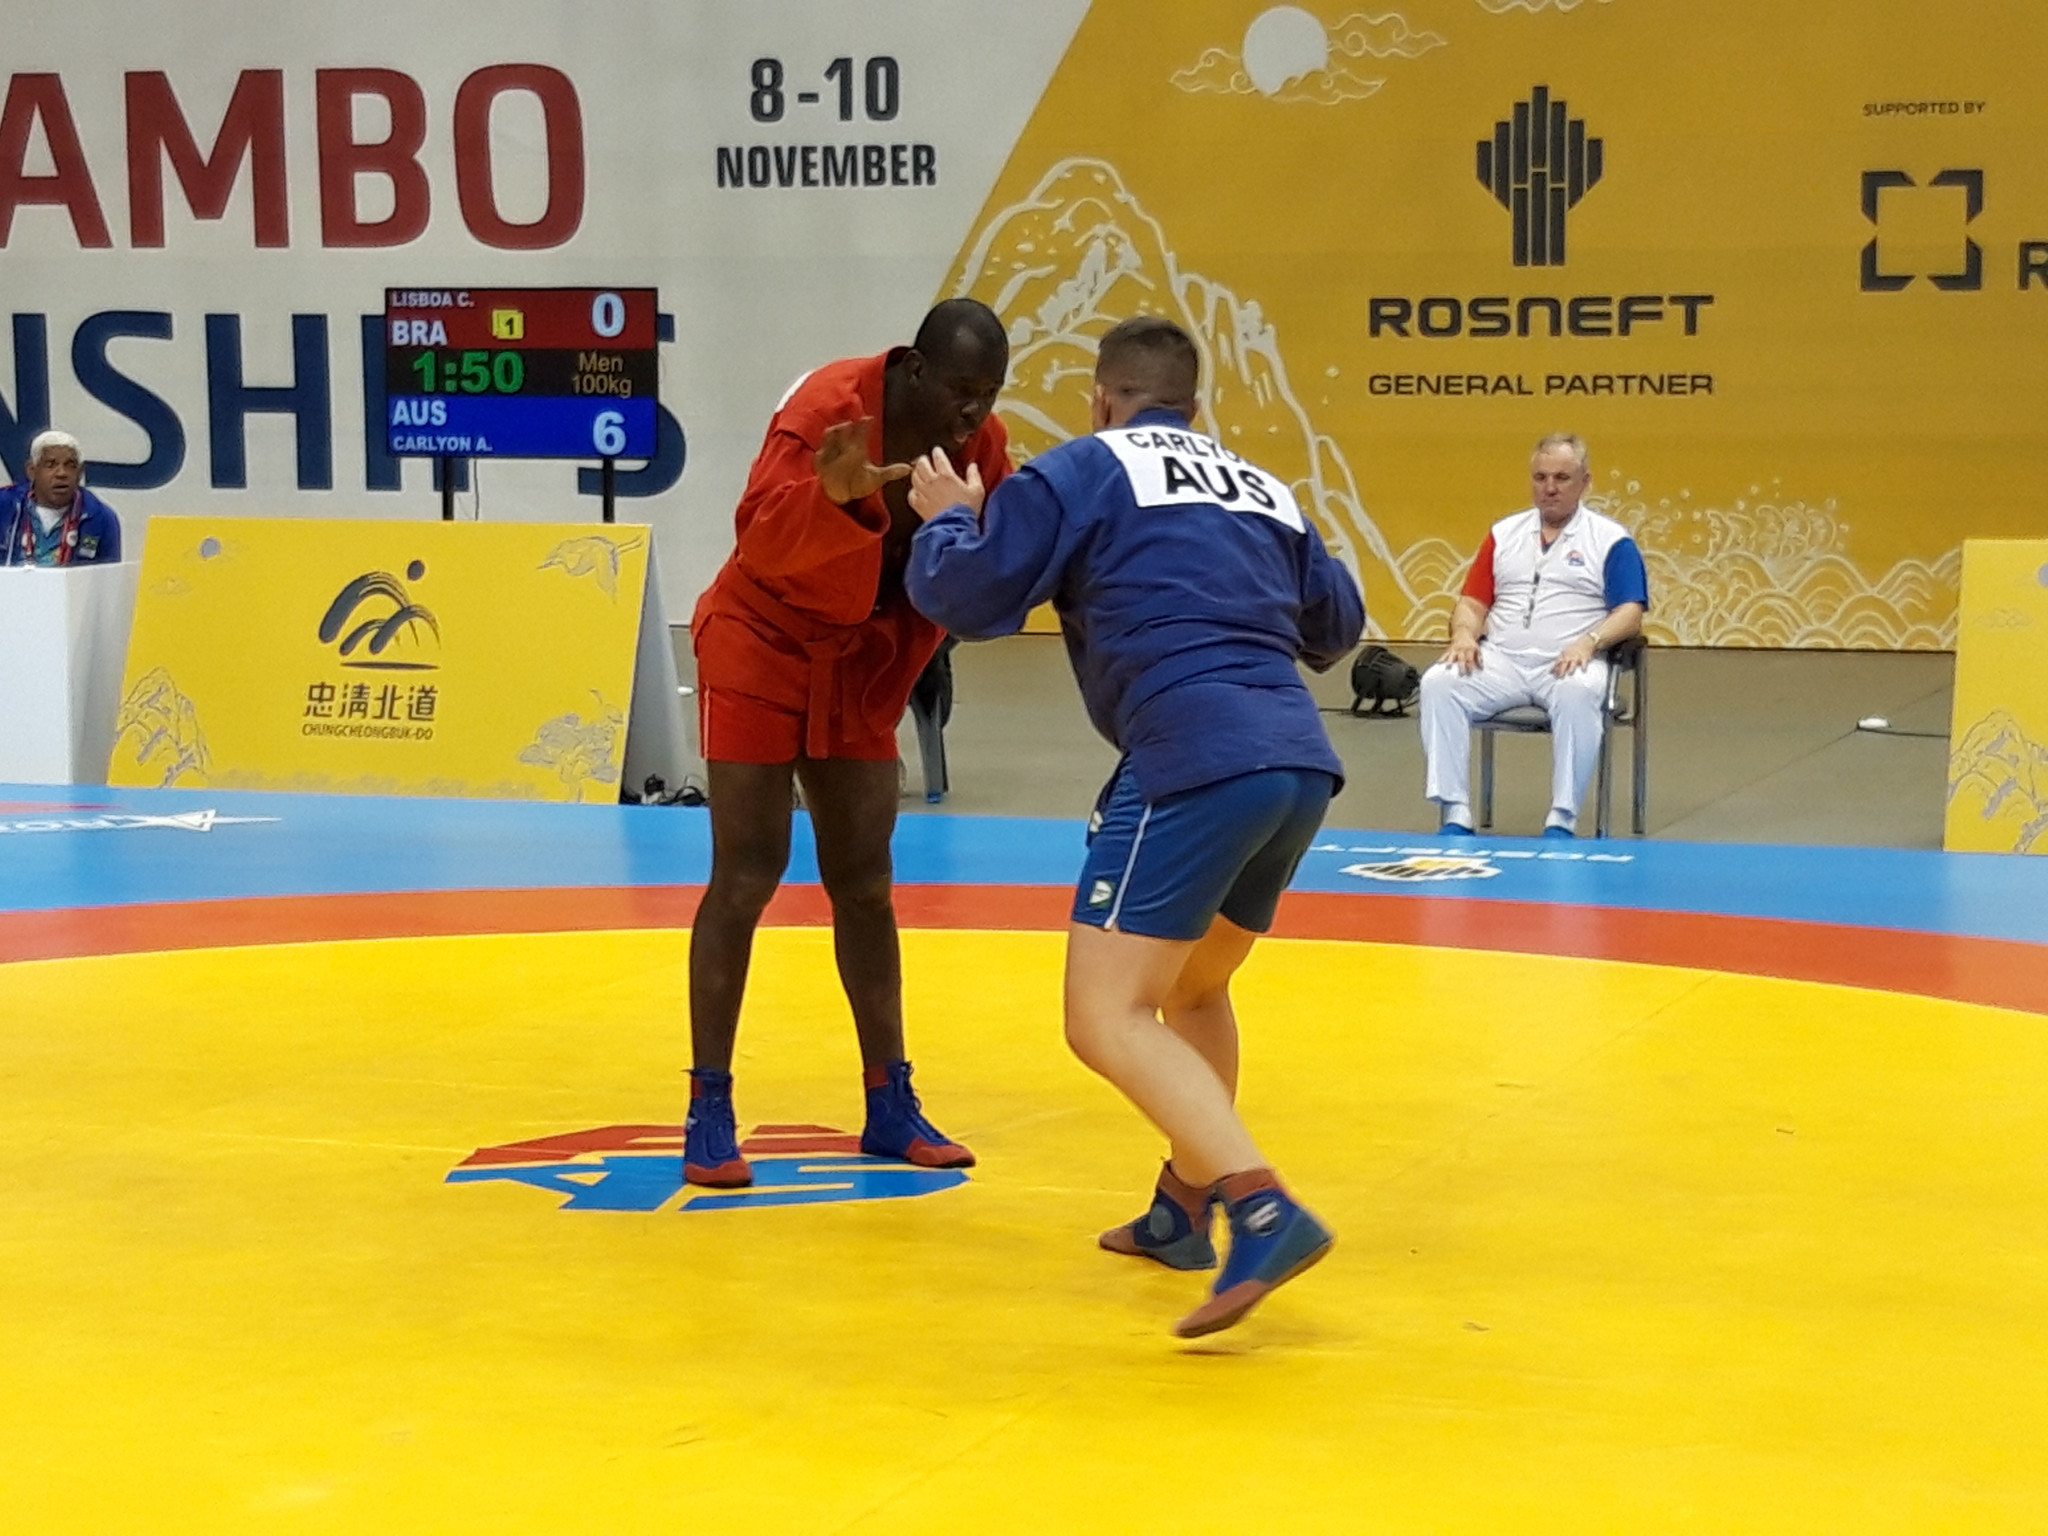 Top seed Cassio Lisboa from Brazil was unceremoniousy dumped out of the men's 100kg preliminary round by Australian Addison Carlyon ©ITG